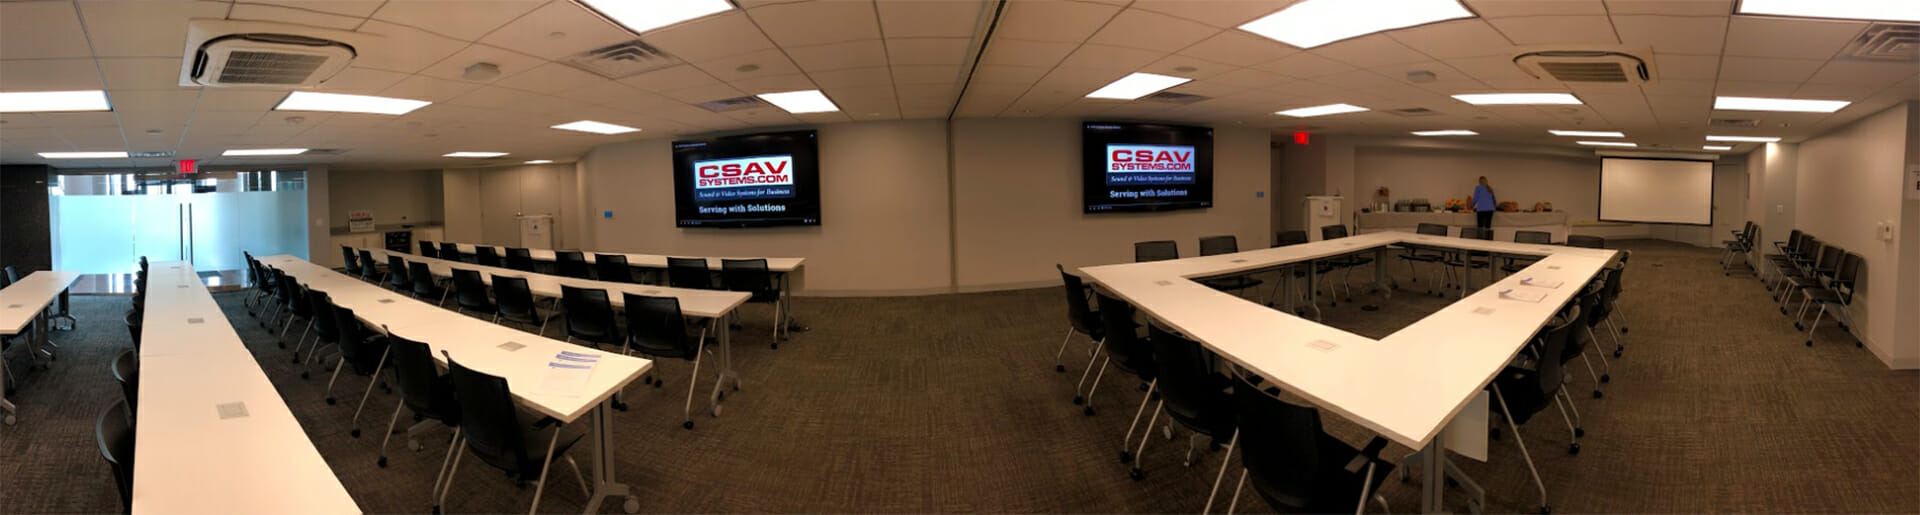 conference room audiovisual solutions